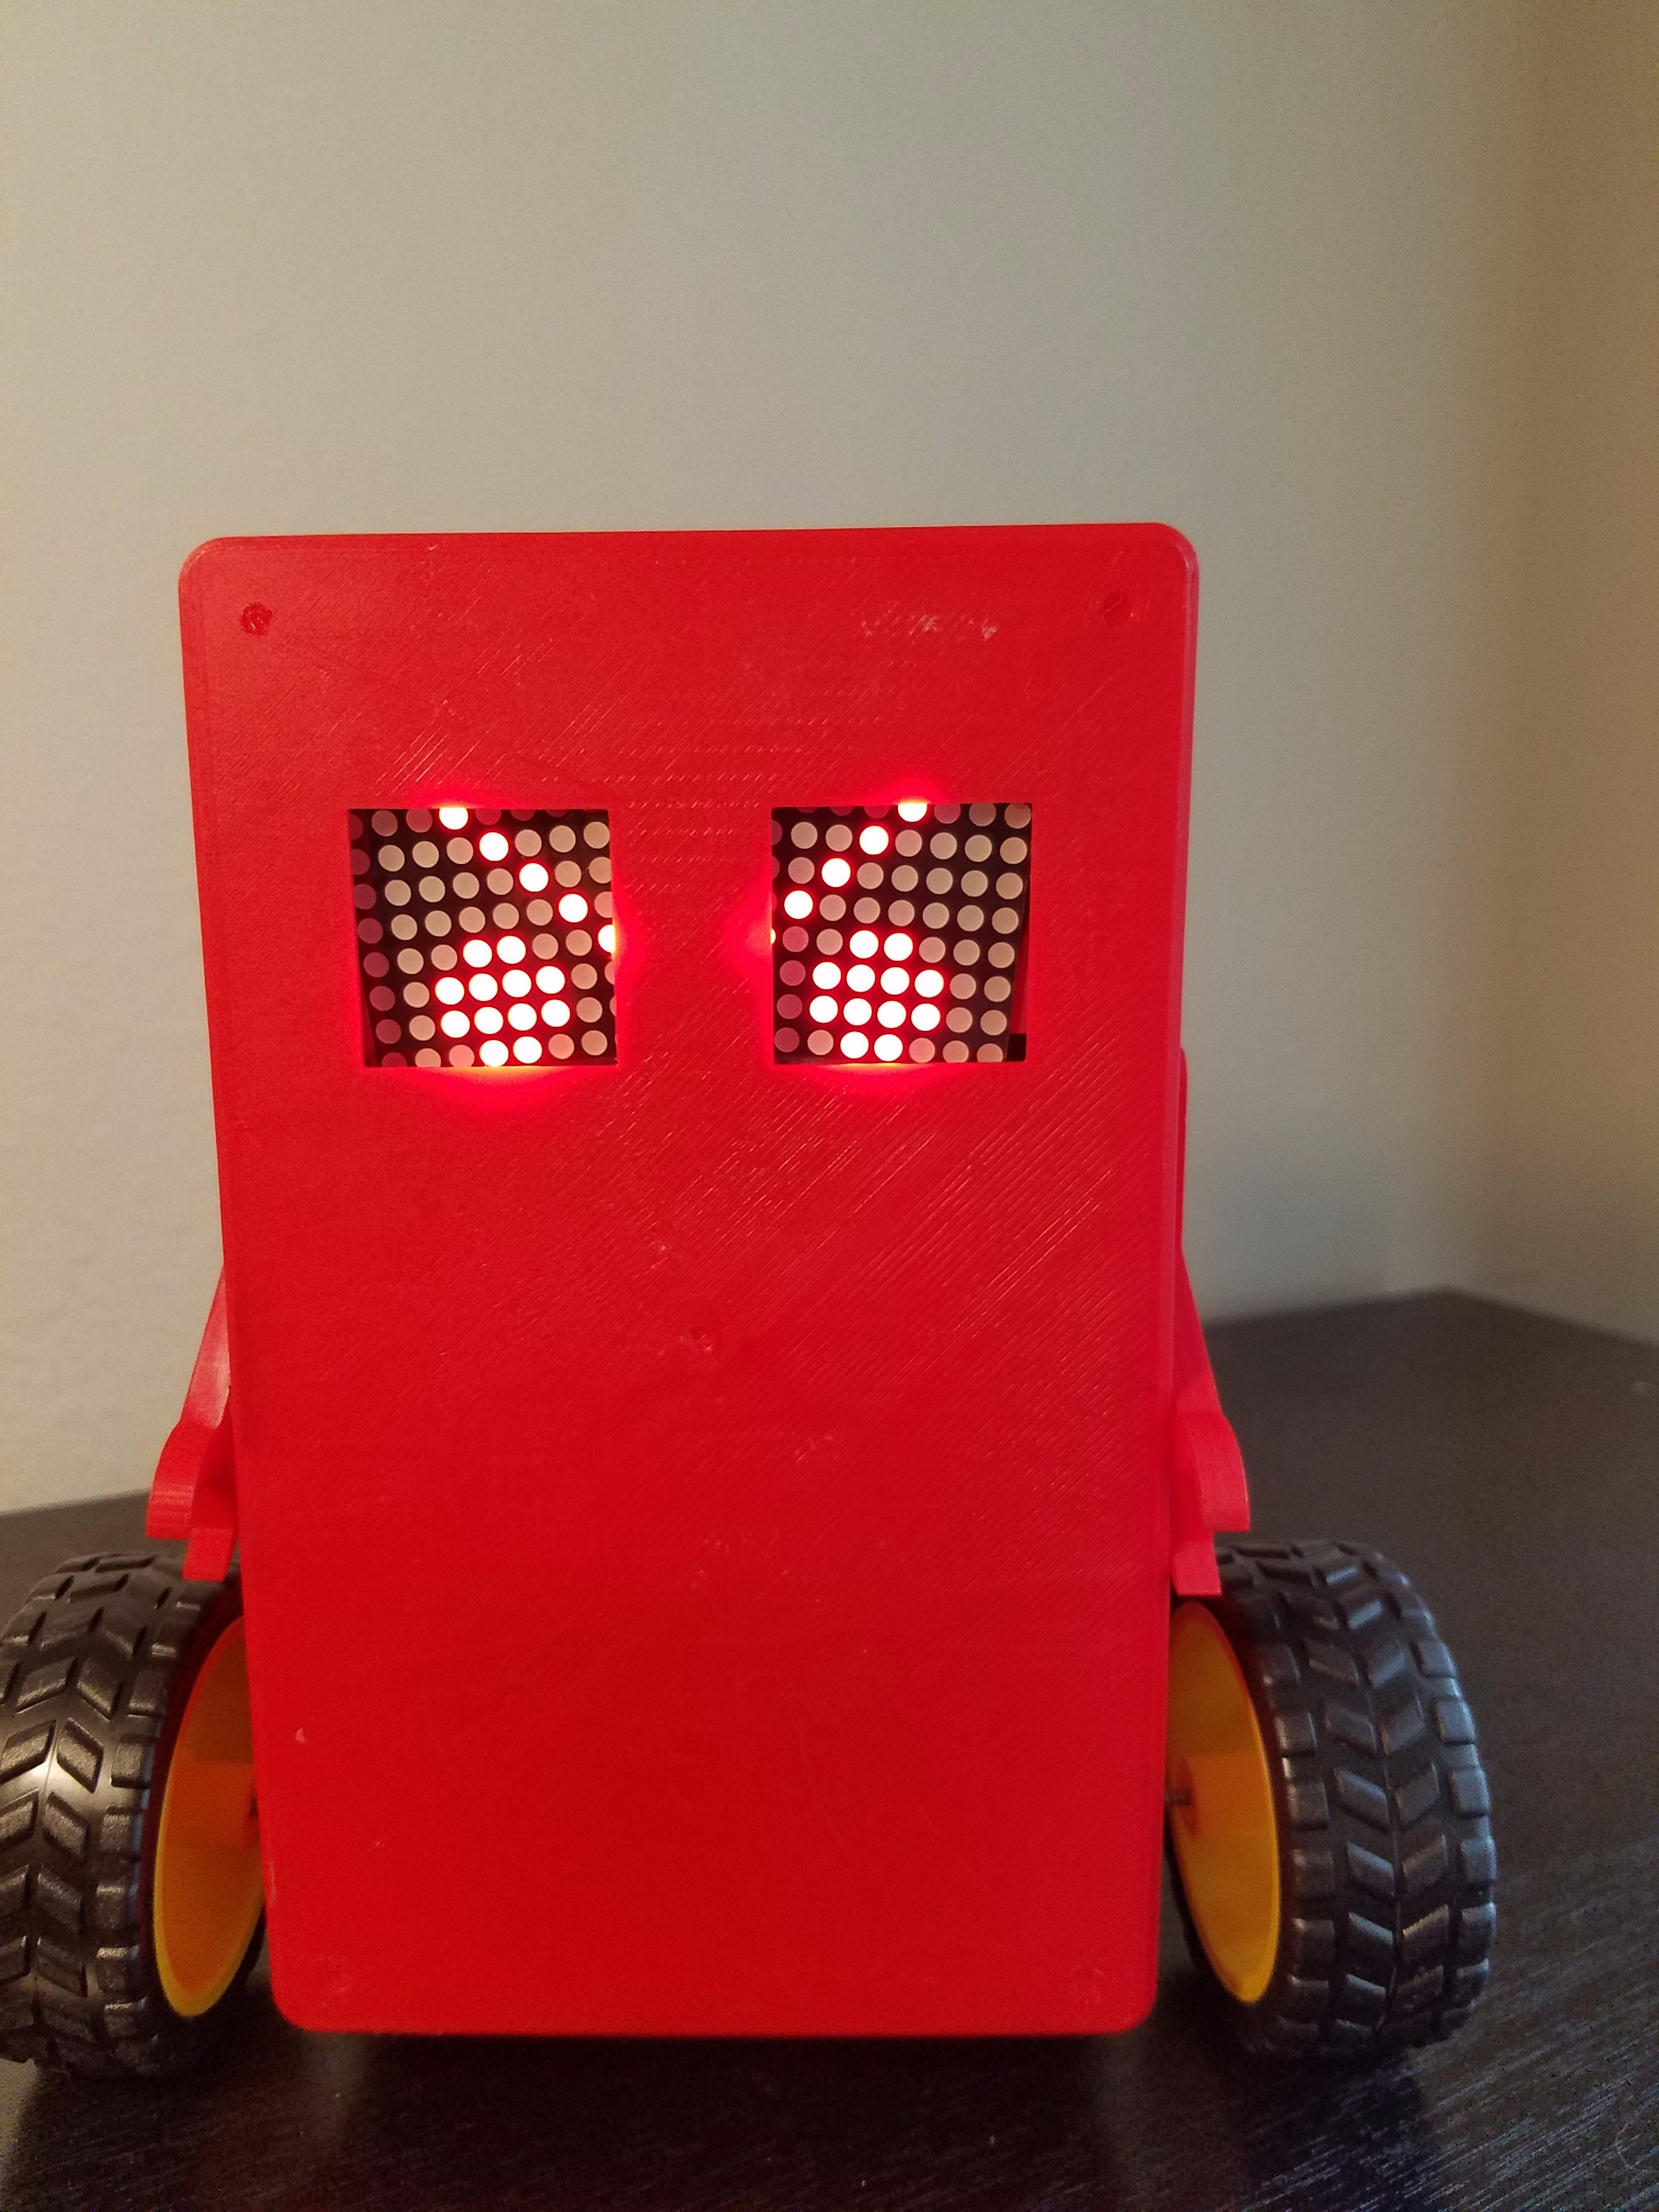 Picture of ARCA (Adorable Remote Controlled Android)